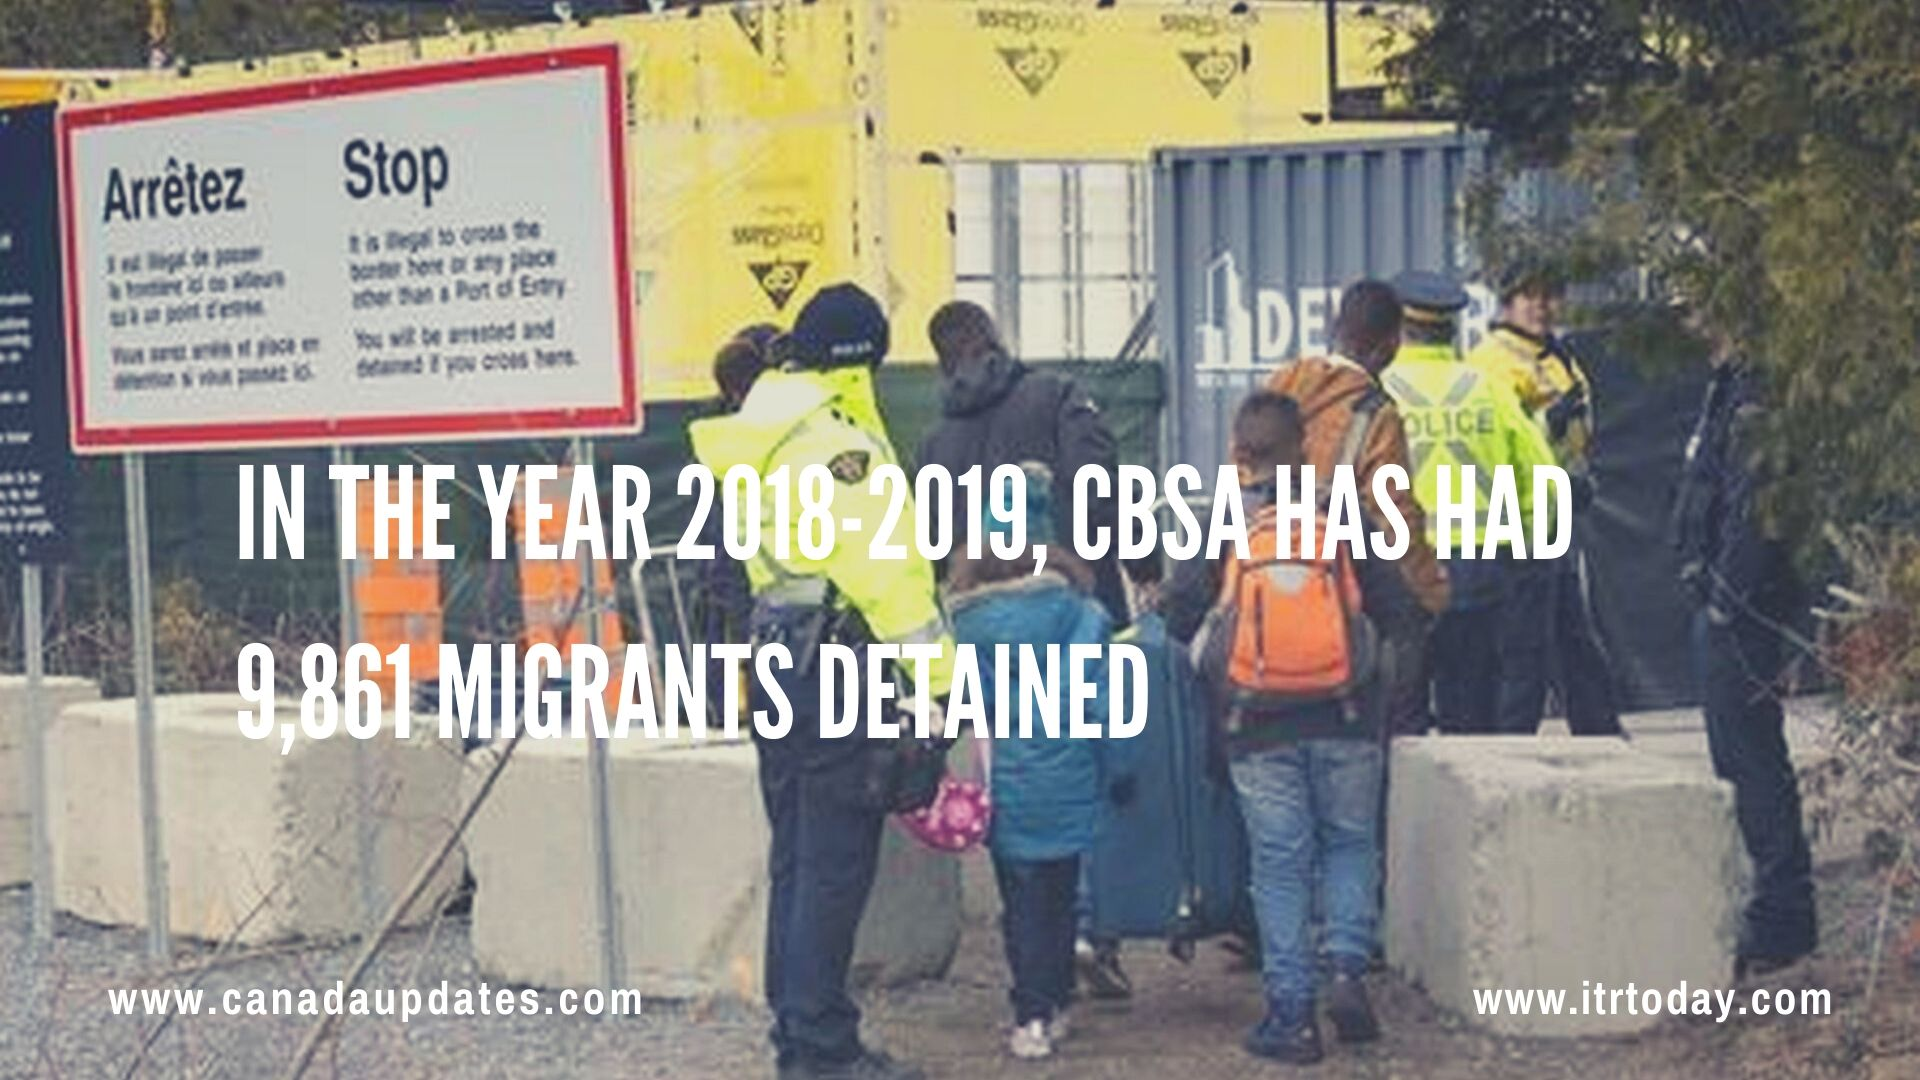 Terrible Record of Locking Up Migrants in Canada2